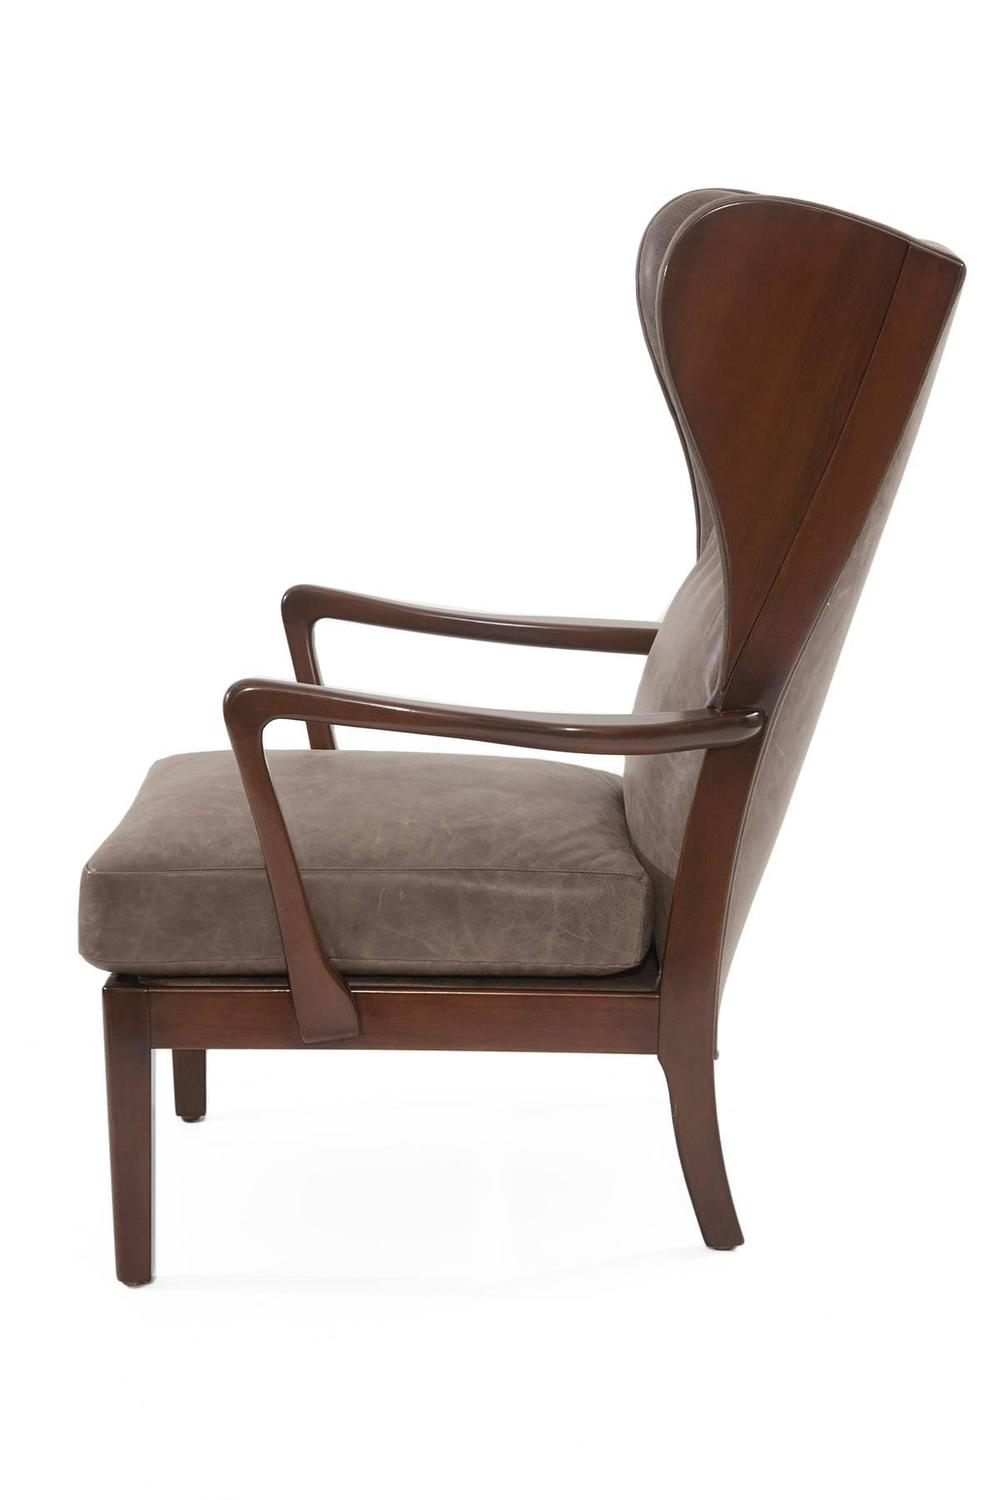 Remarkble scandinavian leather wingback chair for sale at for Leather wingback recliner sale